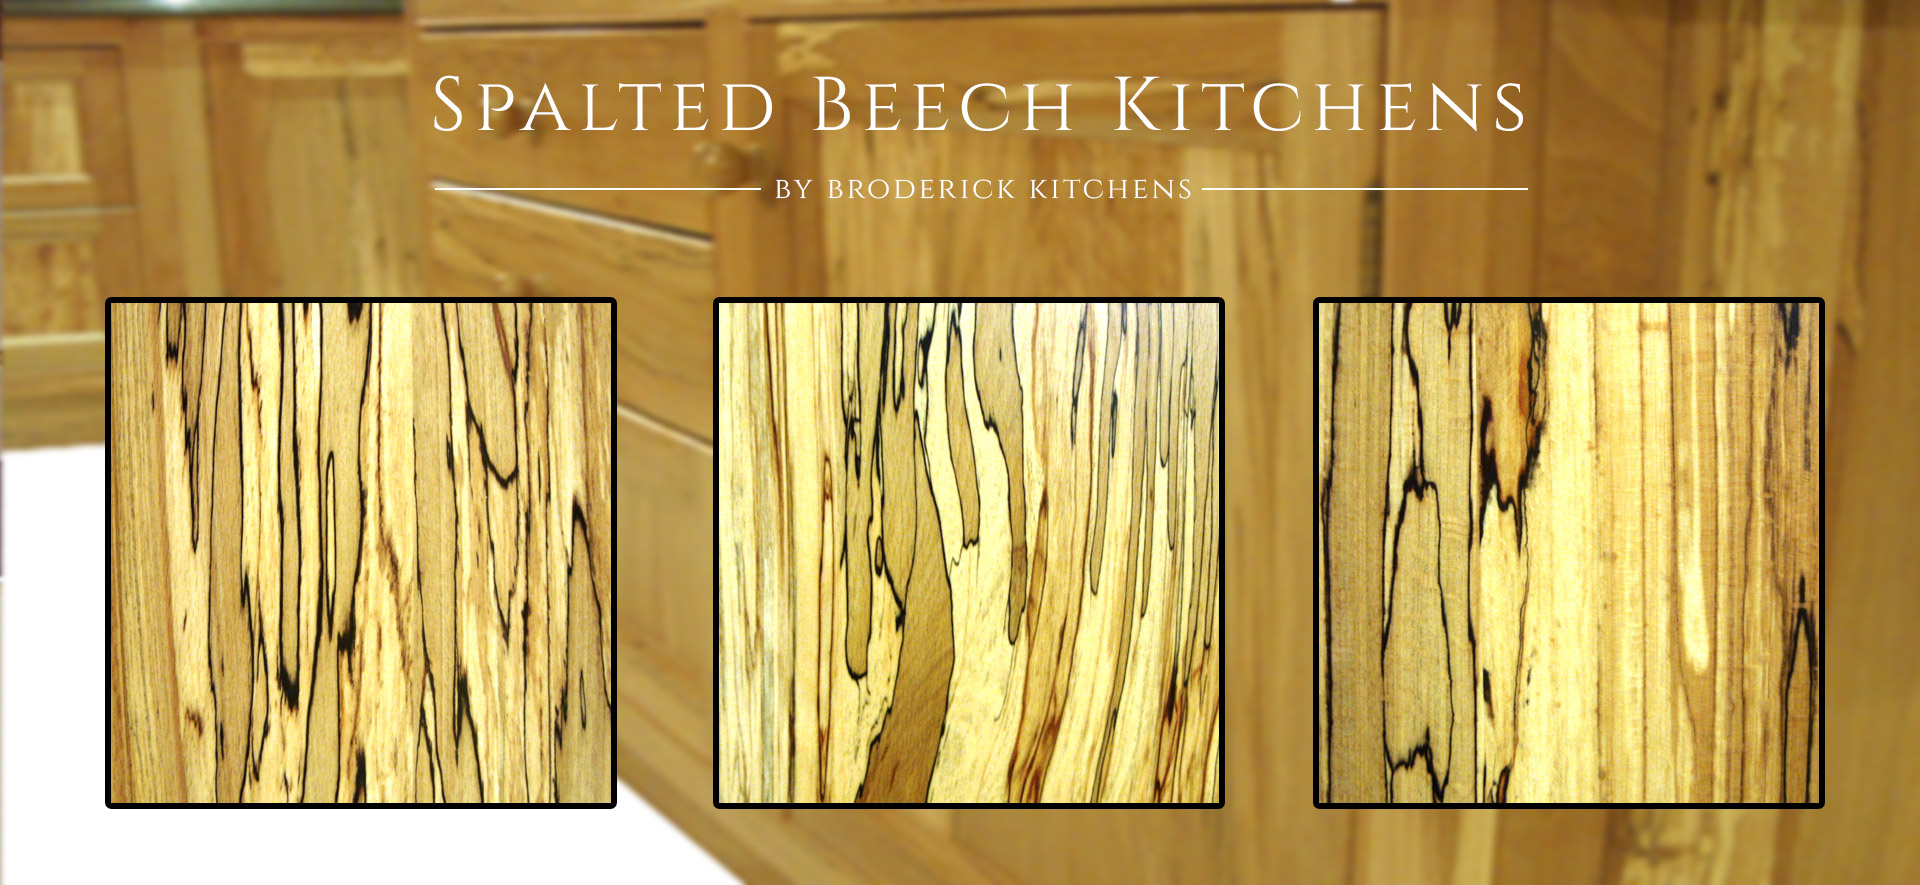 spalted-beech-kitchens